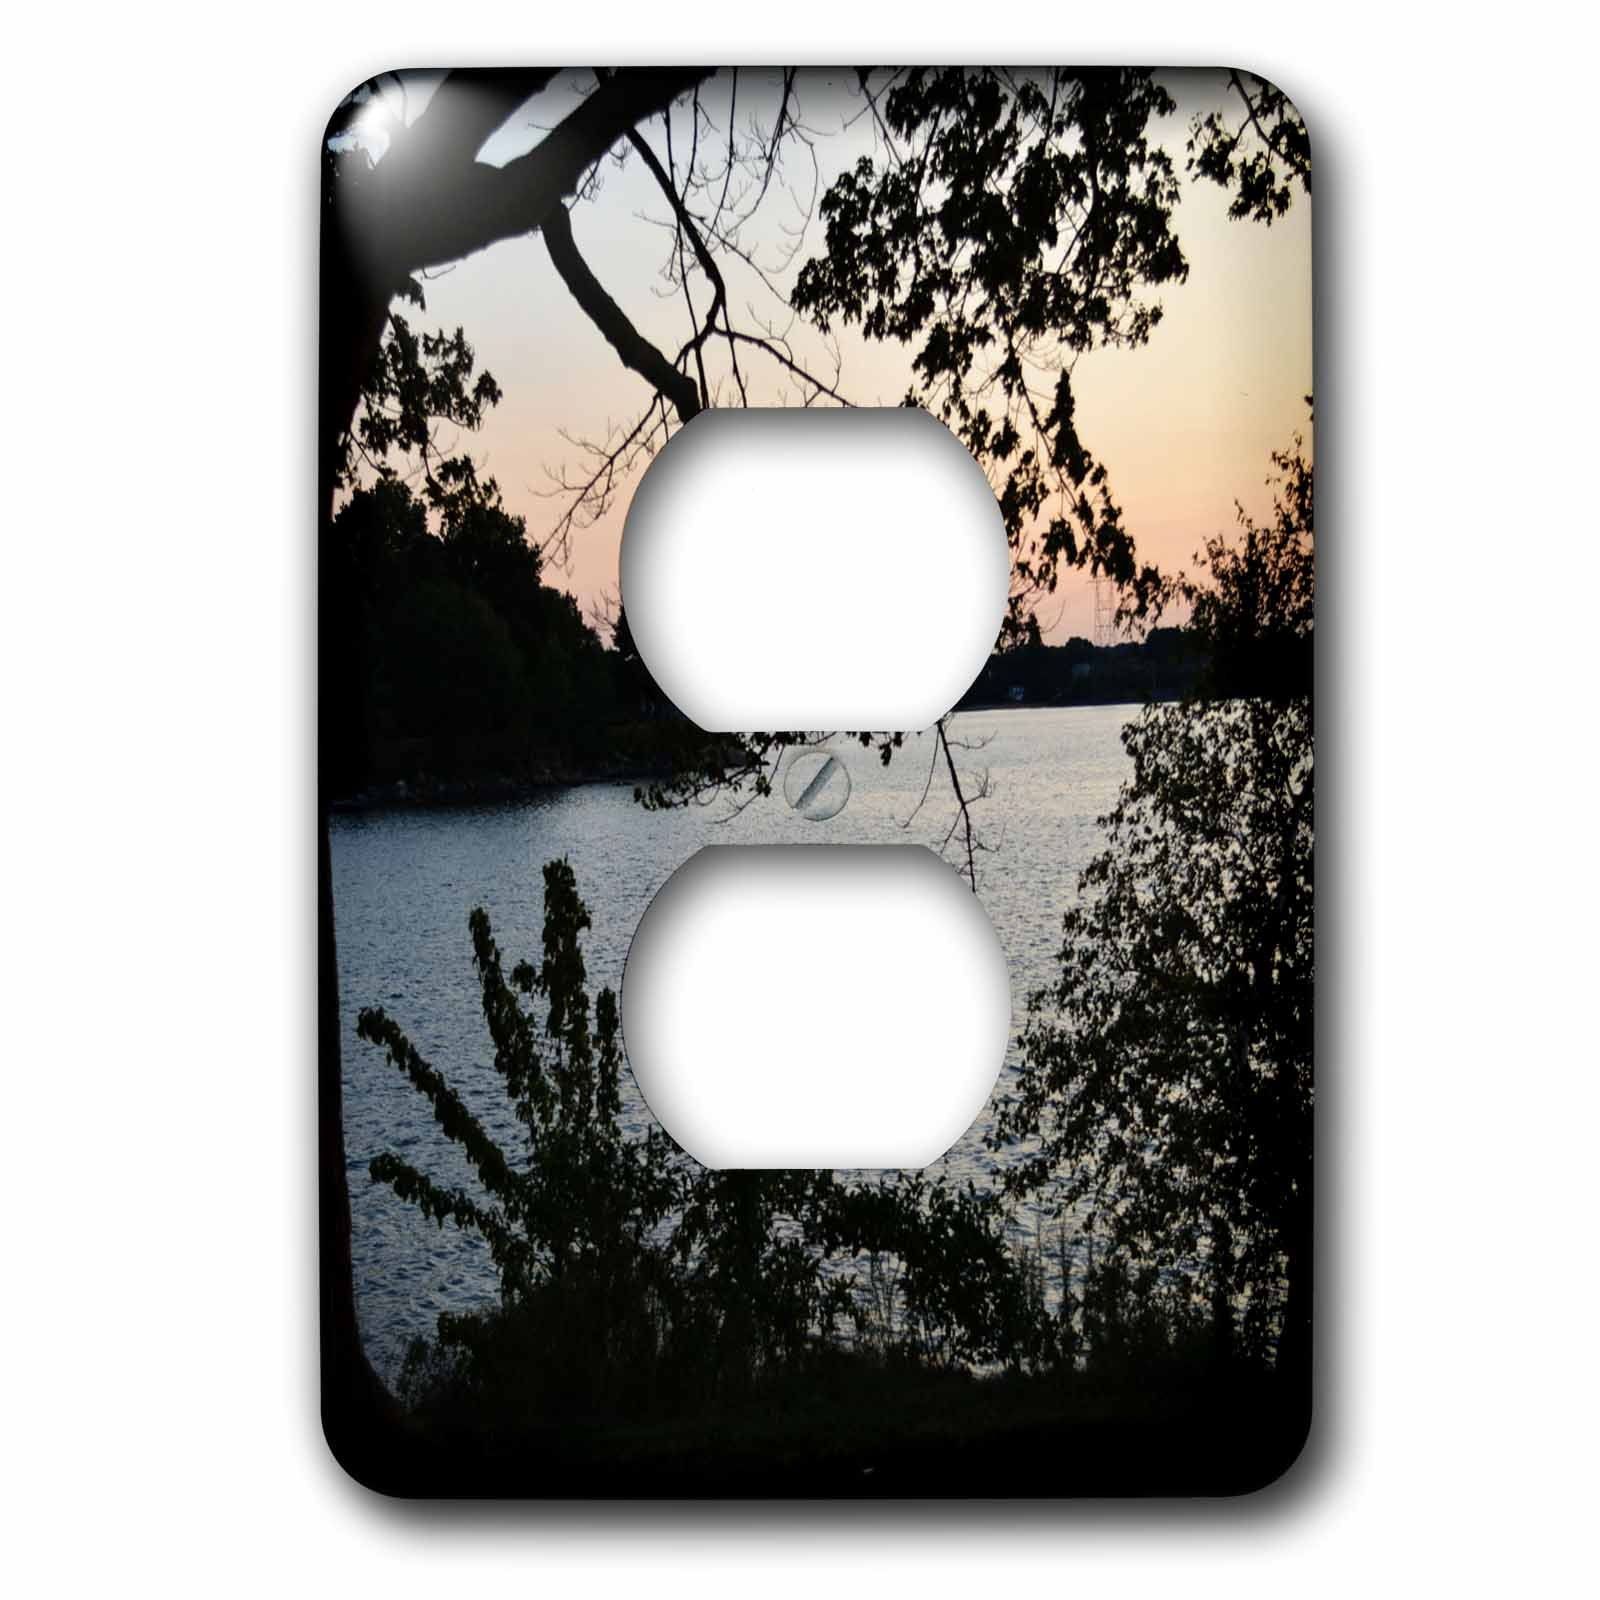 3dRose WhiteOaks Photography and Artwork - Waterscape - A Beautiful Waterscape View is a photo from Salem Willow Park - Light Switch Covers - 2 plug outlet cover (lsp_265372_6)